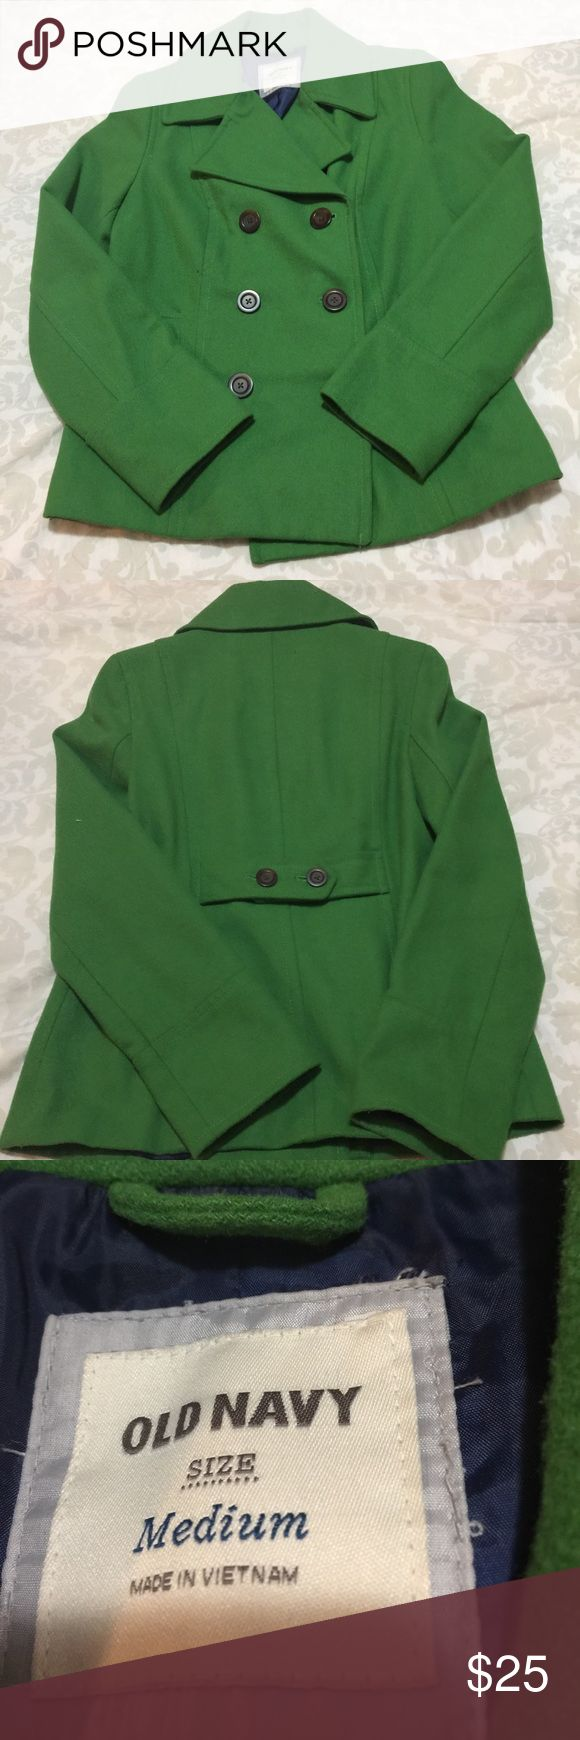 Green old navy pea coat In very good condition no rips or stains. Prices are negotiable make me a offer. Old Navy Jackets & Coats Pea Coats